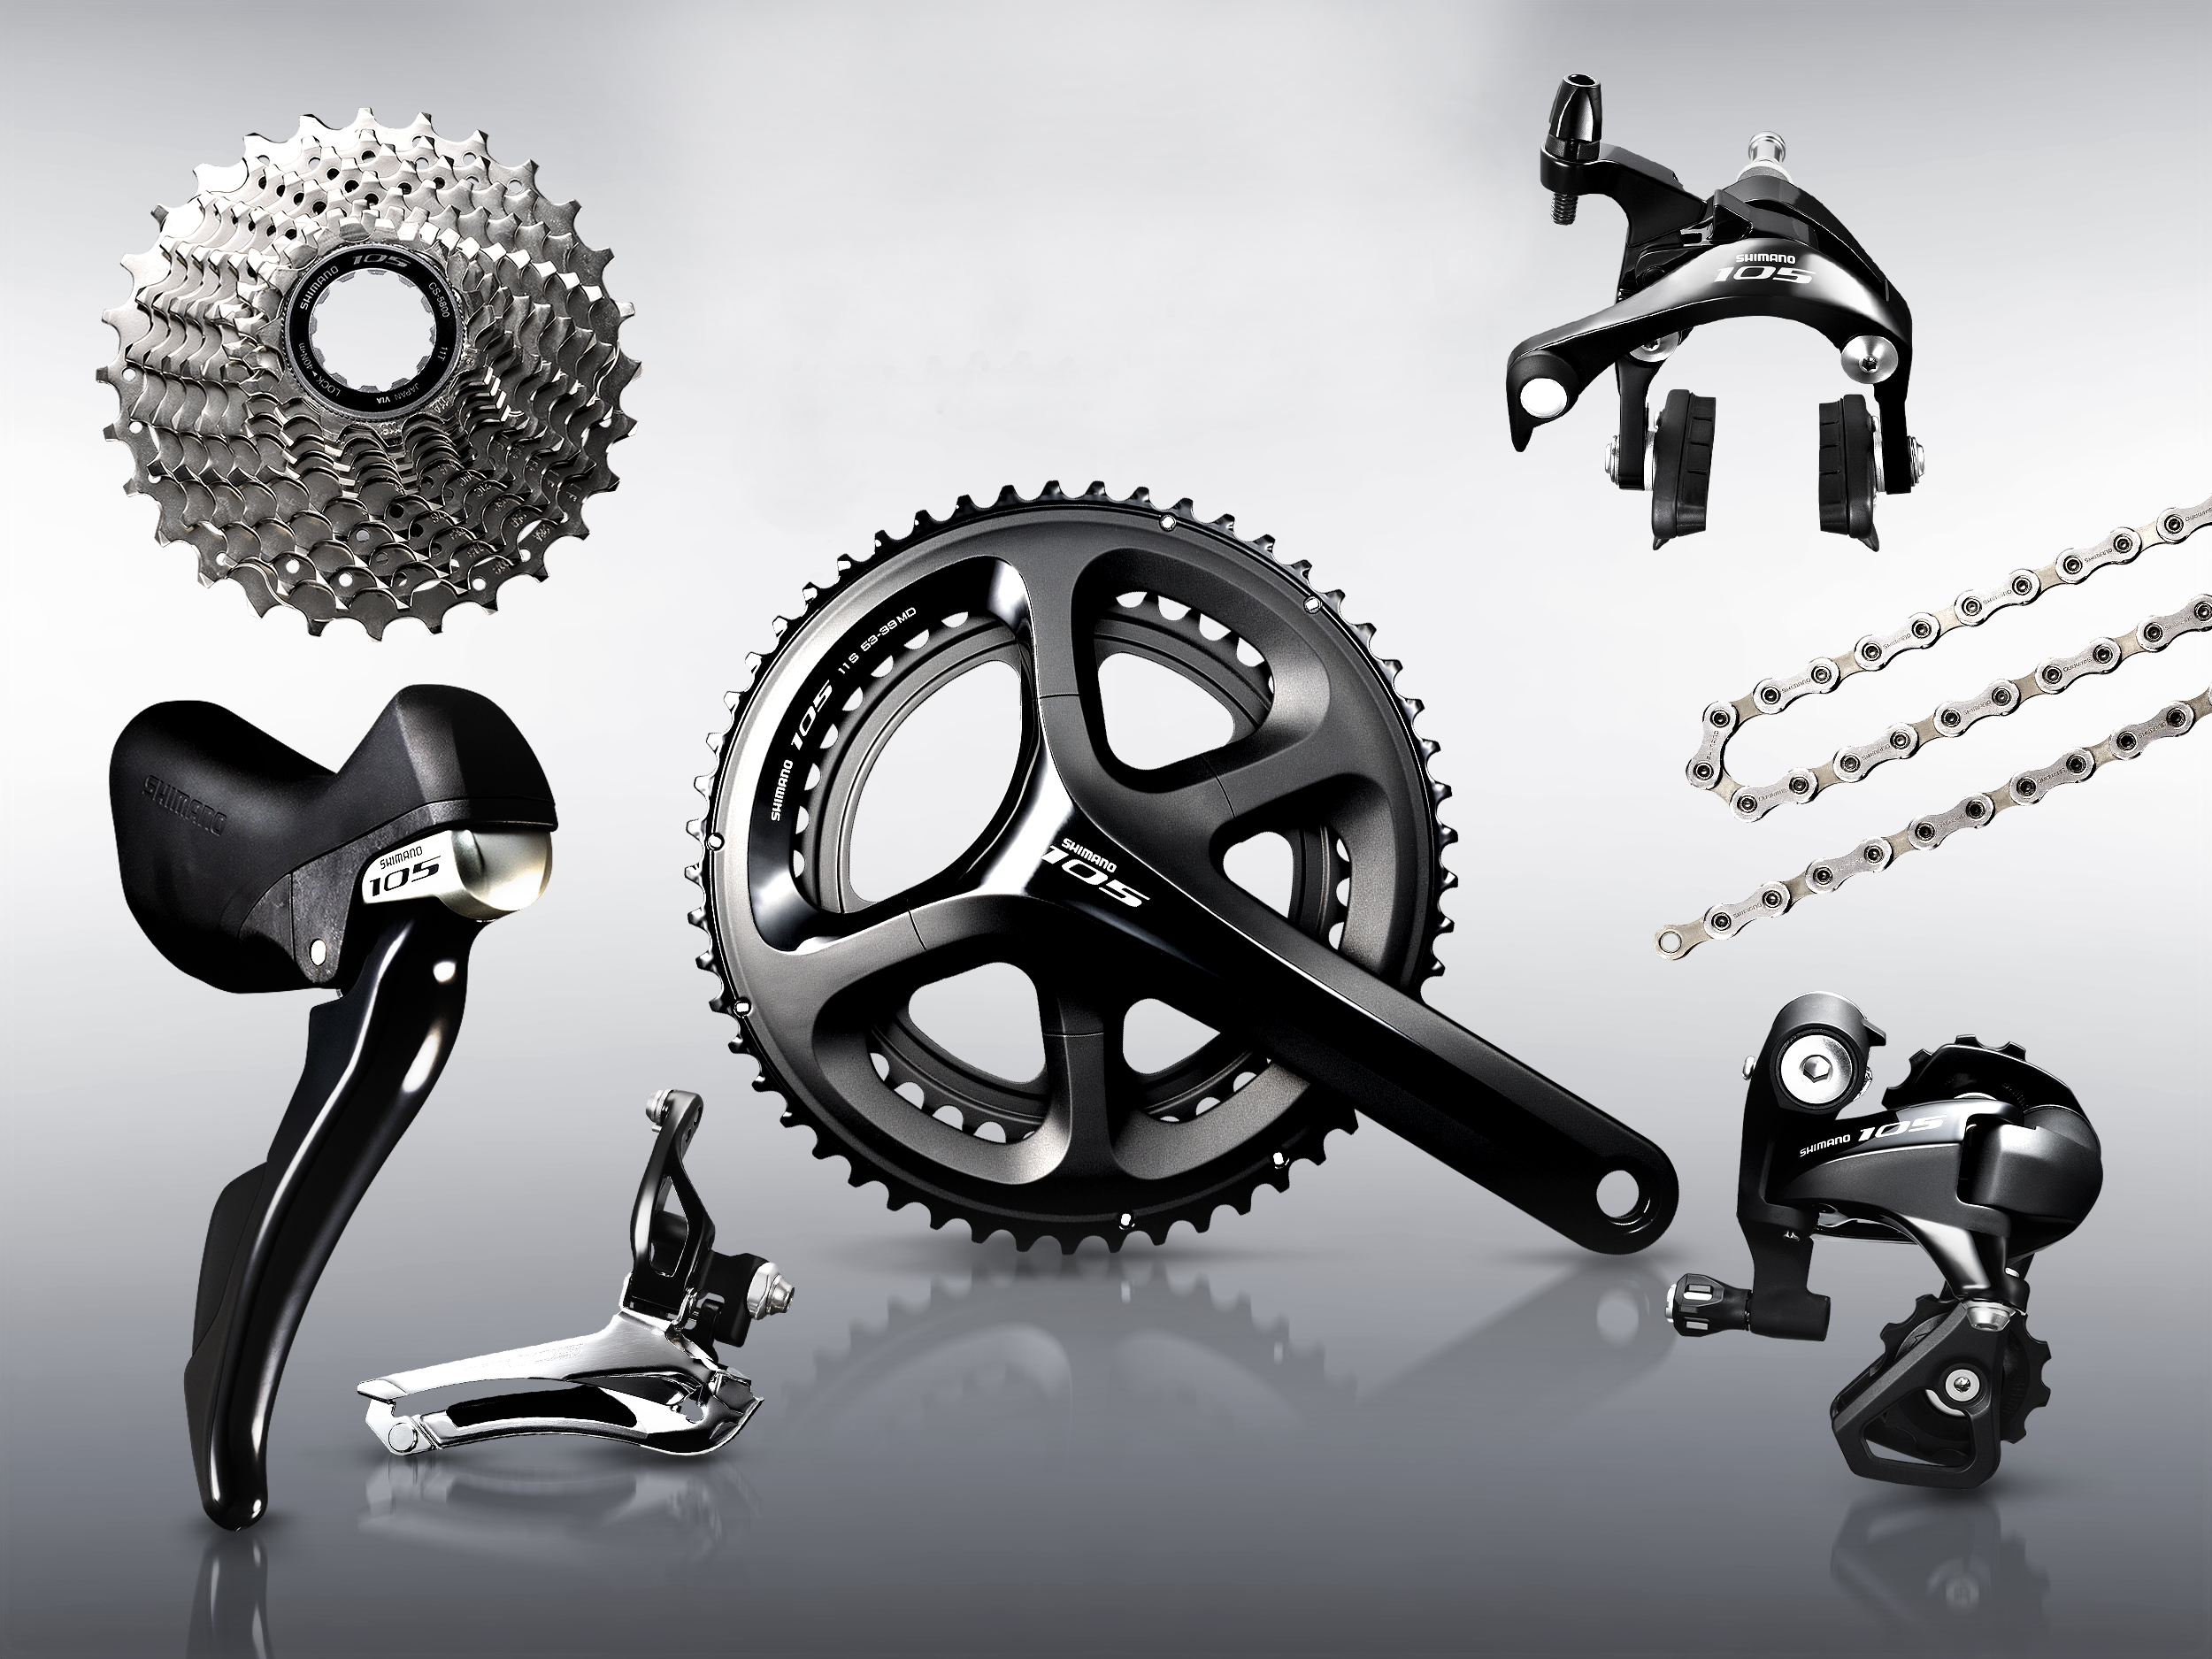 Shimano 105 groupset, 5800-series, pic: ©Shimano, submitted by Rudy Bouwmeester, used with permission